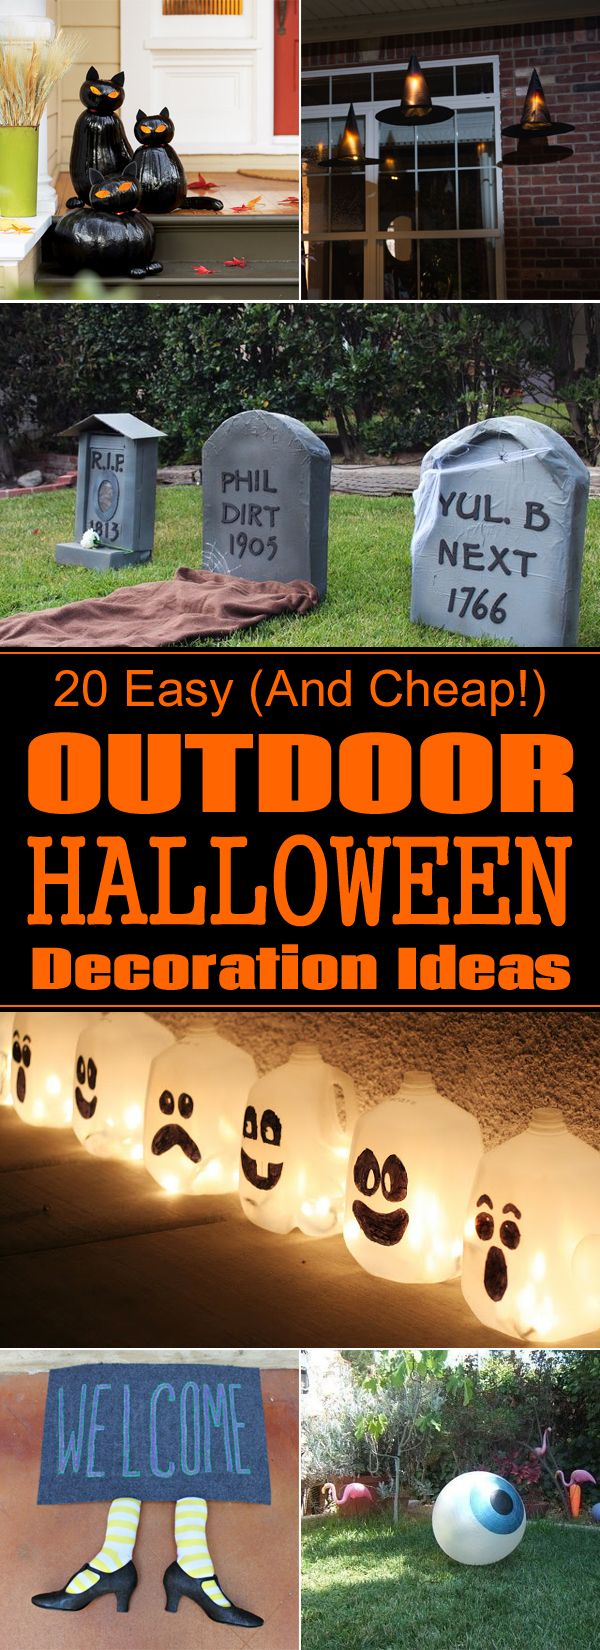 Diy outdoor halloween decor - Diy Outdoor Halloween Decoration Ideas